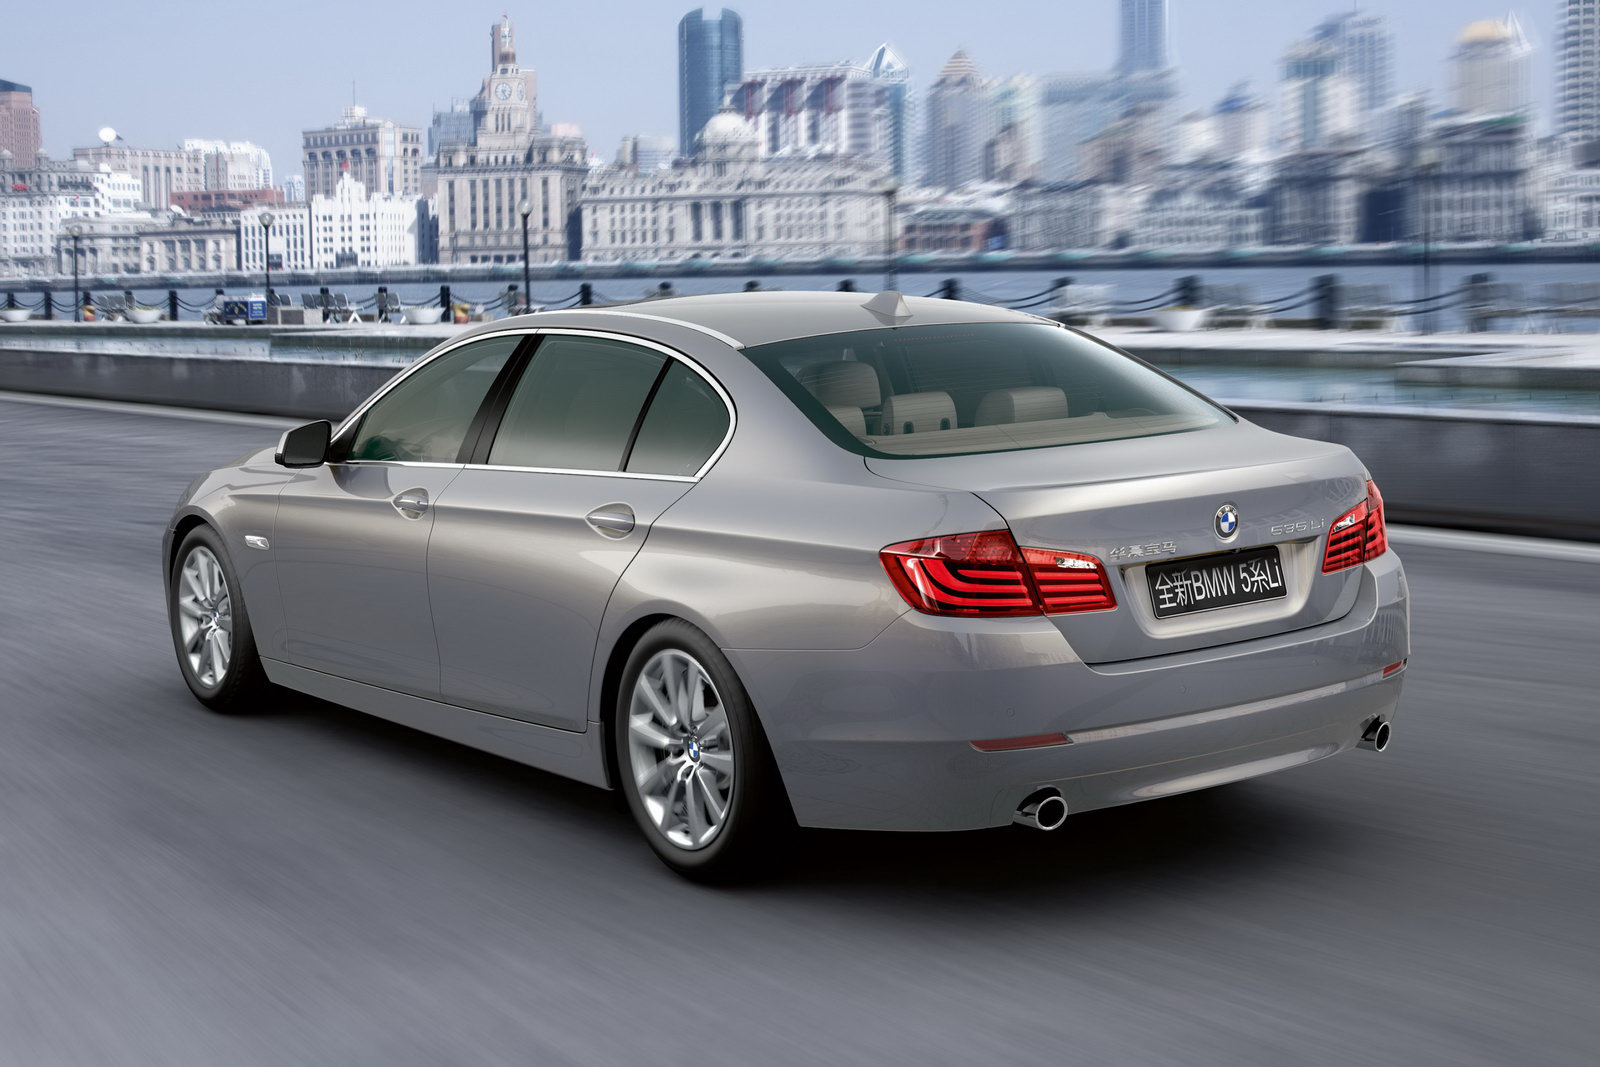 2011 bmw 5 series long wheelbase sedan carblog. Black Bedroom Furniture Sets. Home Design Ideas